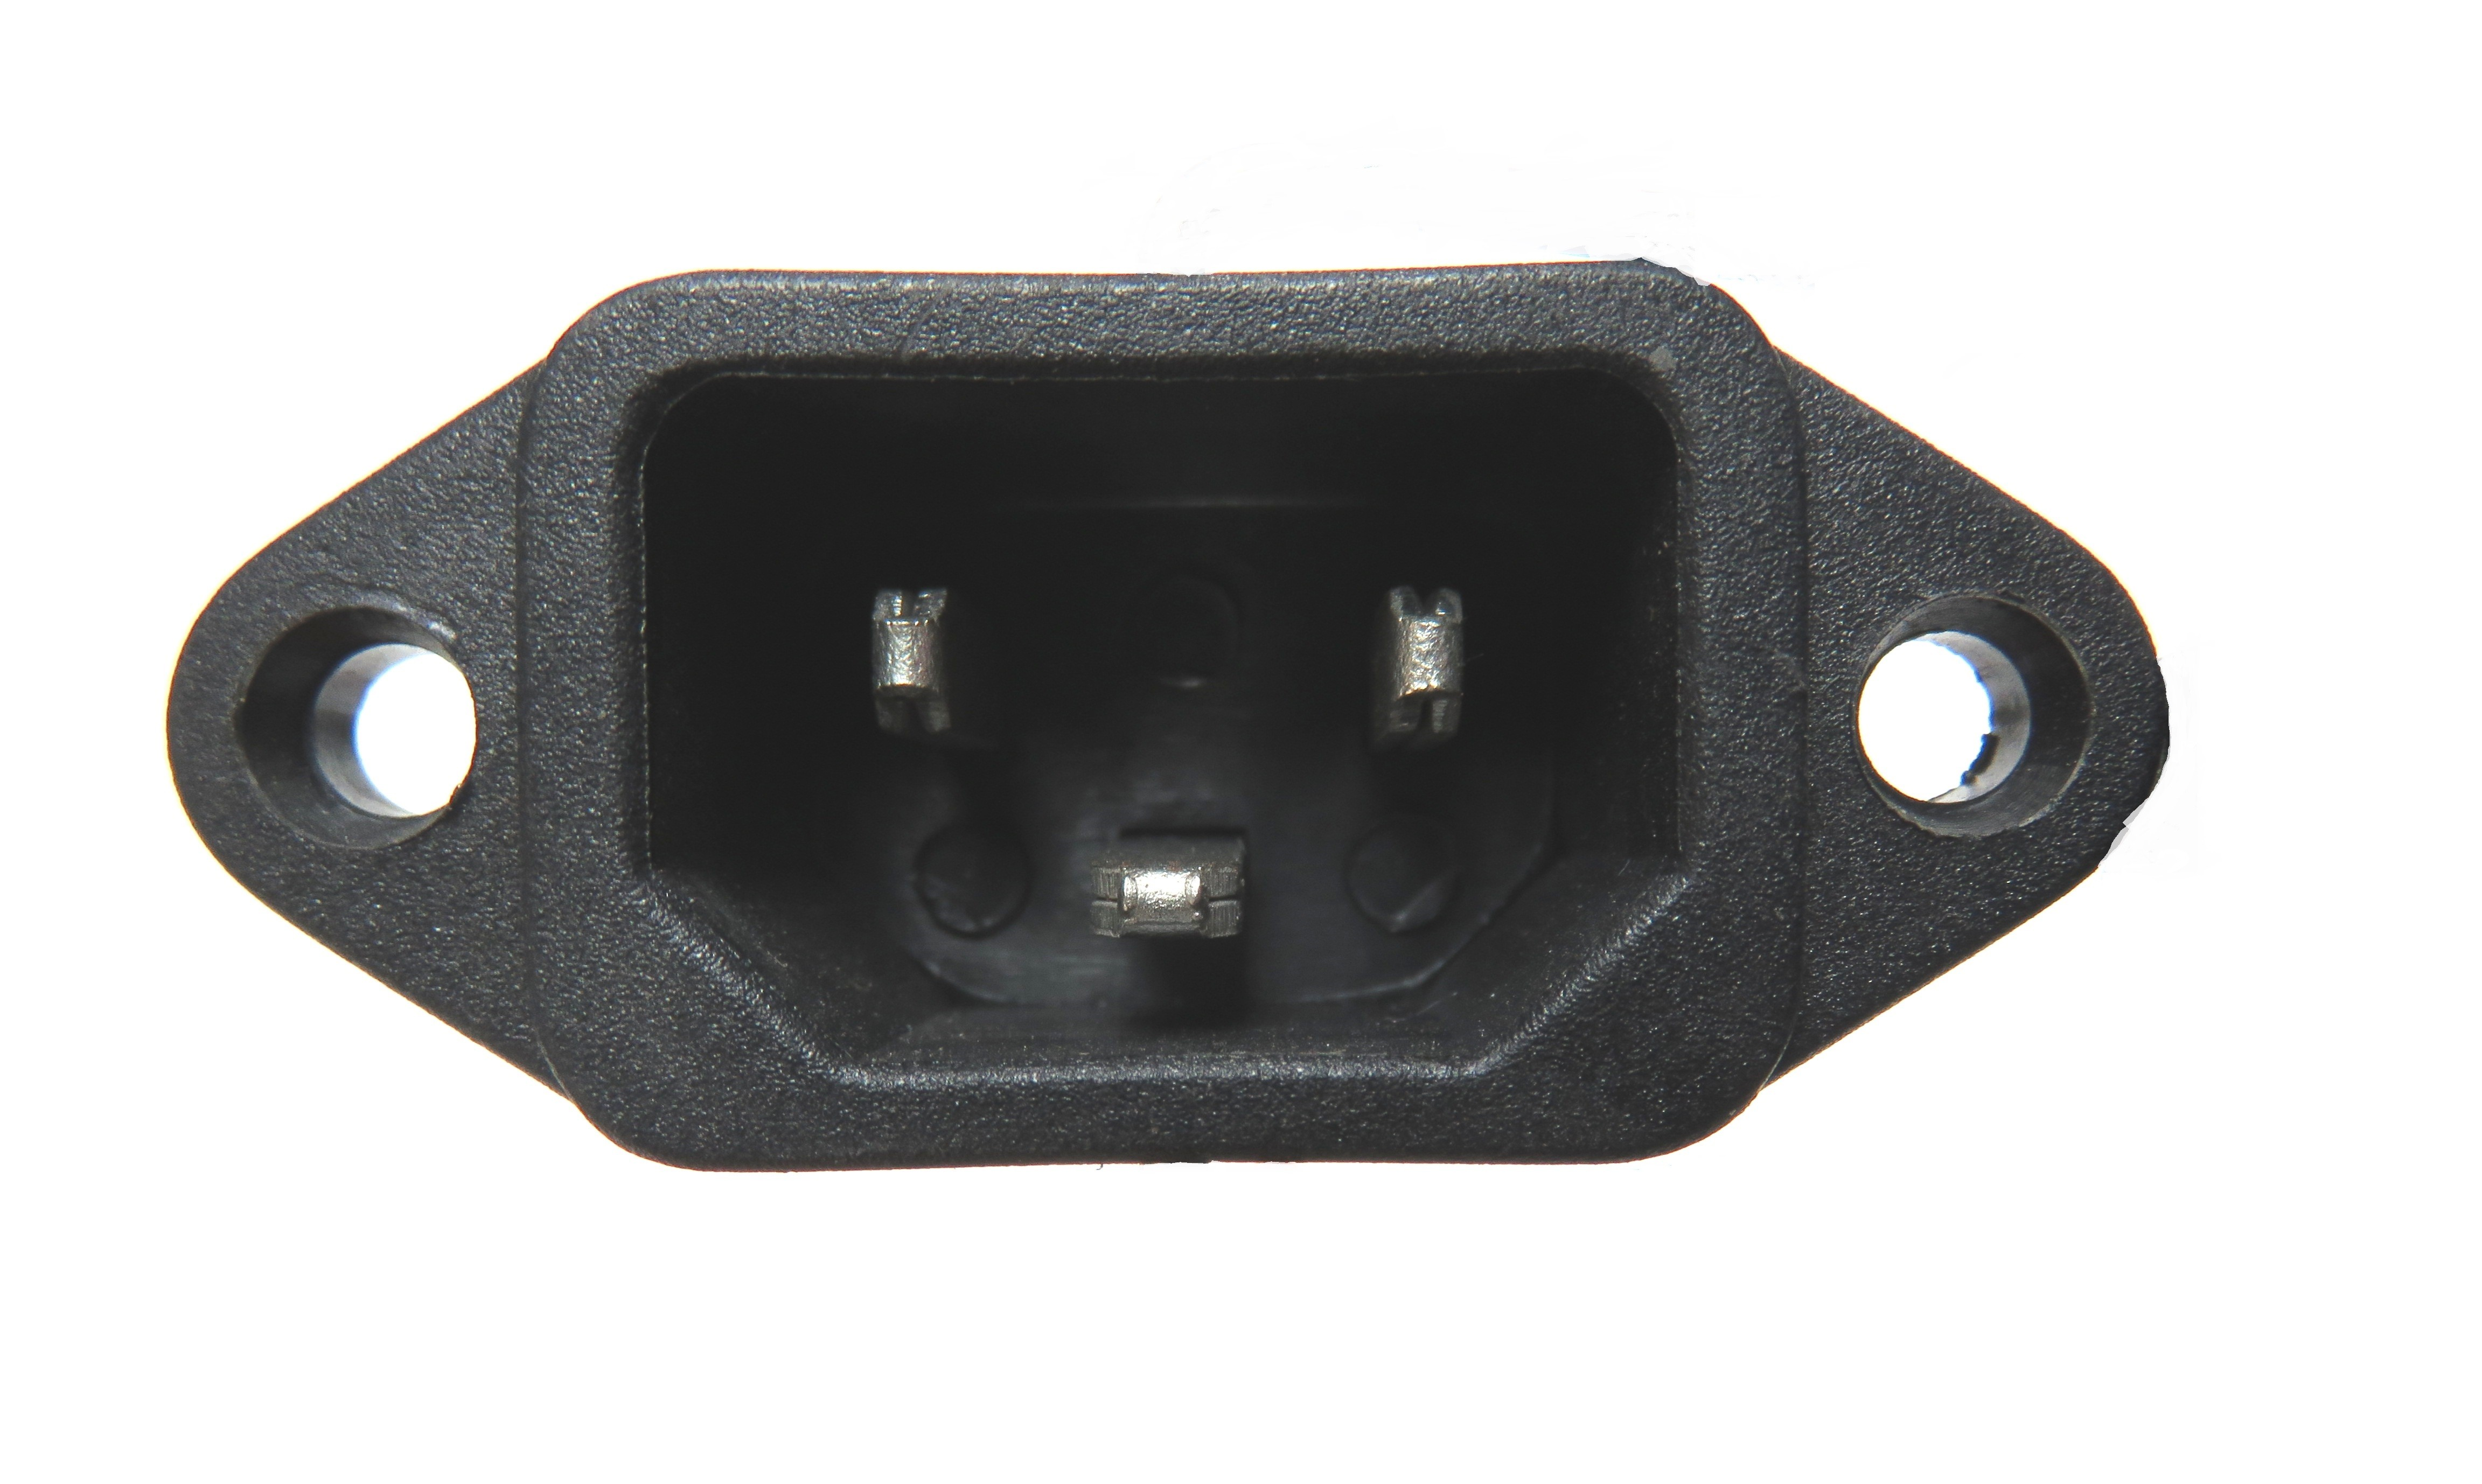 Battery Box Charging Port Plug DC Input Male Middle